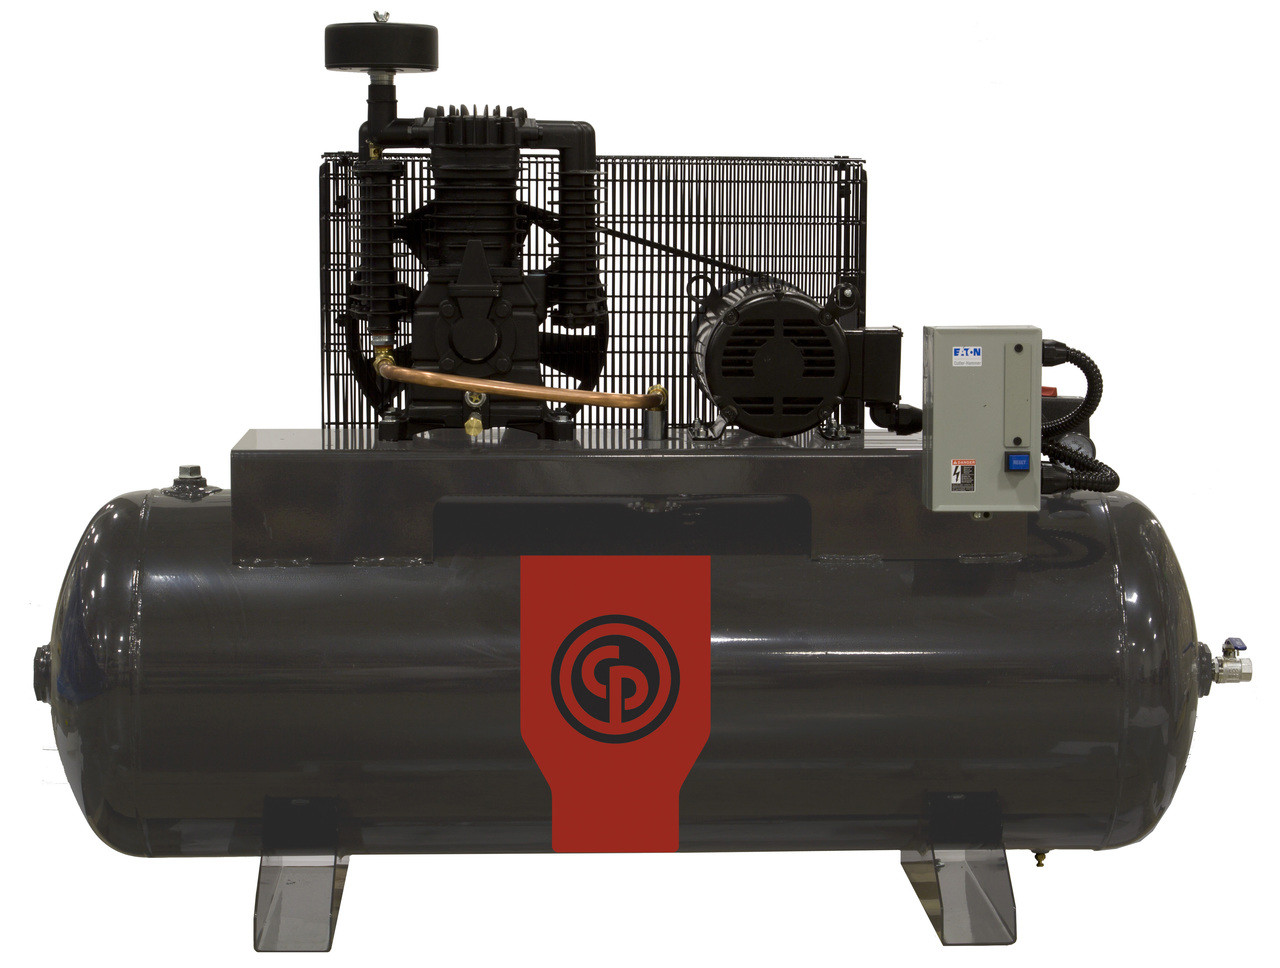 Chicago Pneumatic RCP-338HS4 5 HP 460 Volt Three Phase Two Stage 80 Gallon Horizontal Air Compressor